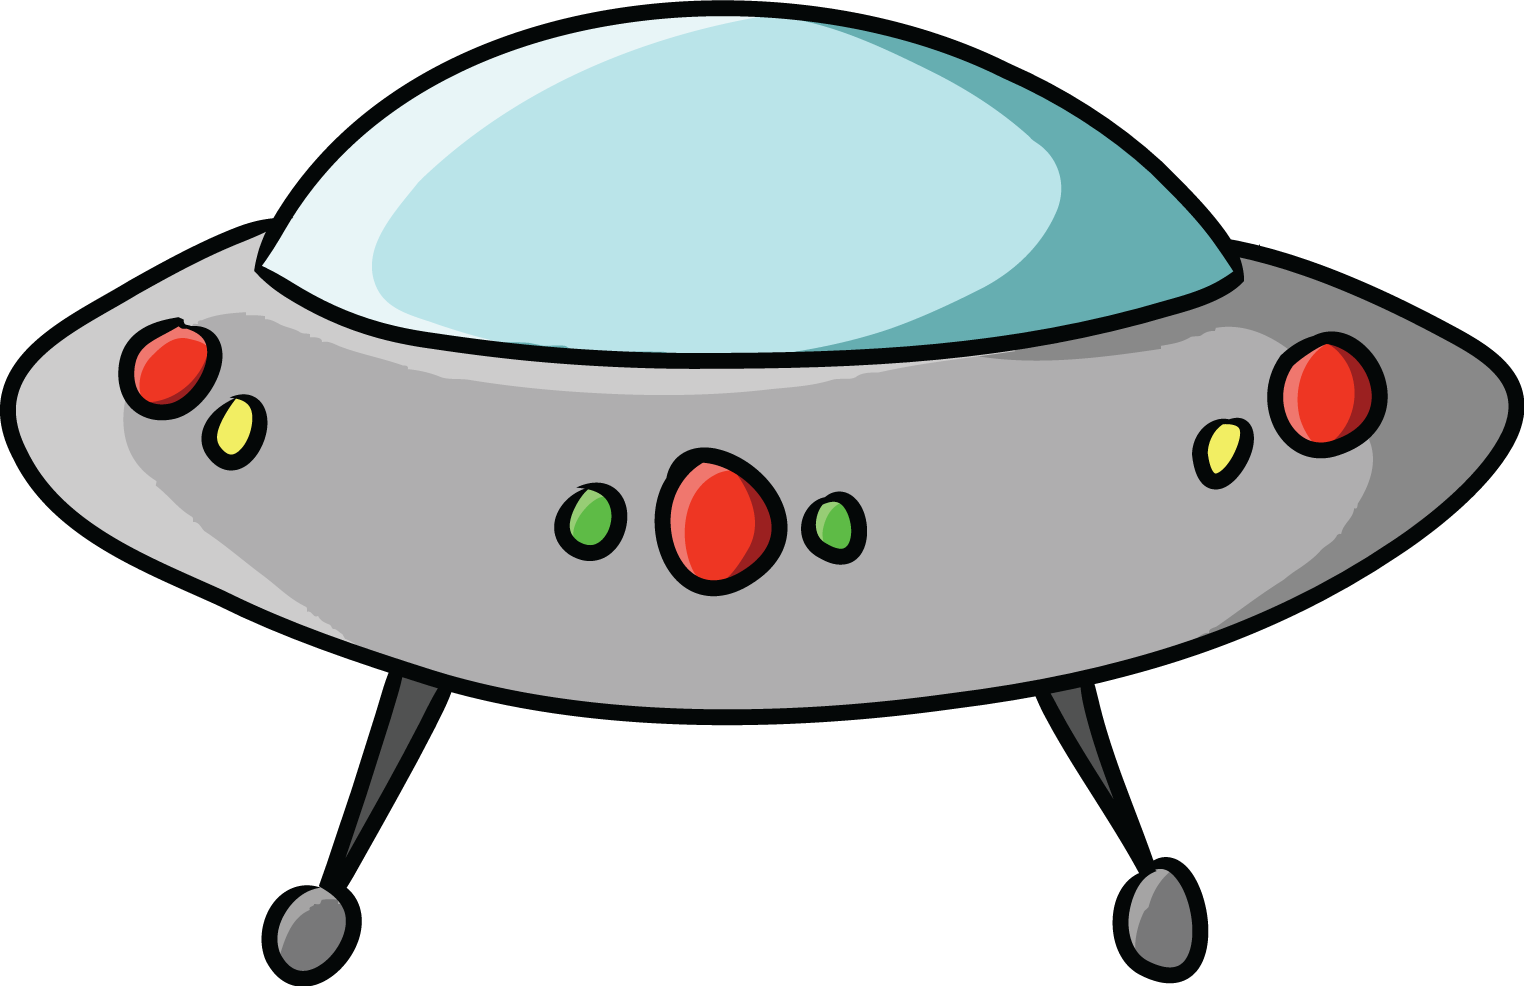 Free Cartoon UFO Clip Art-Free Cartoon UFO Clip Art-0